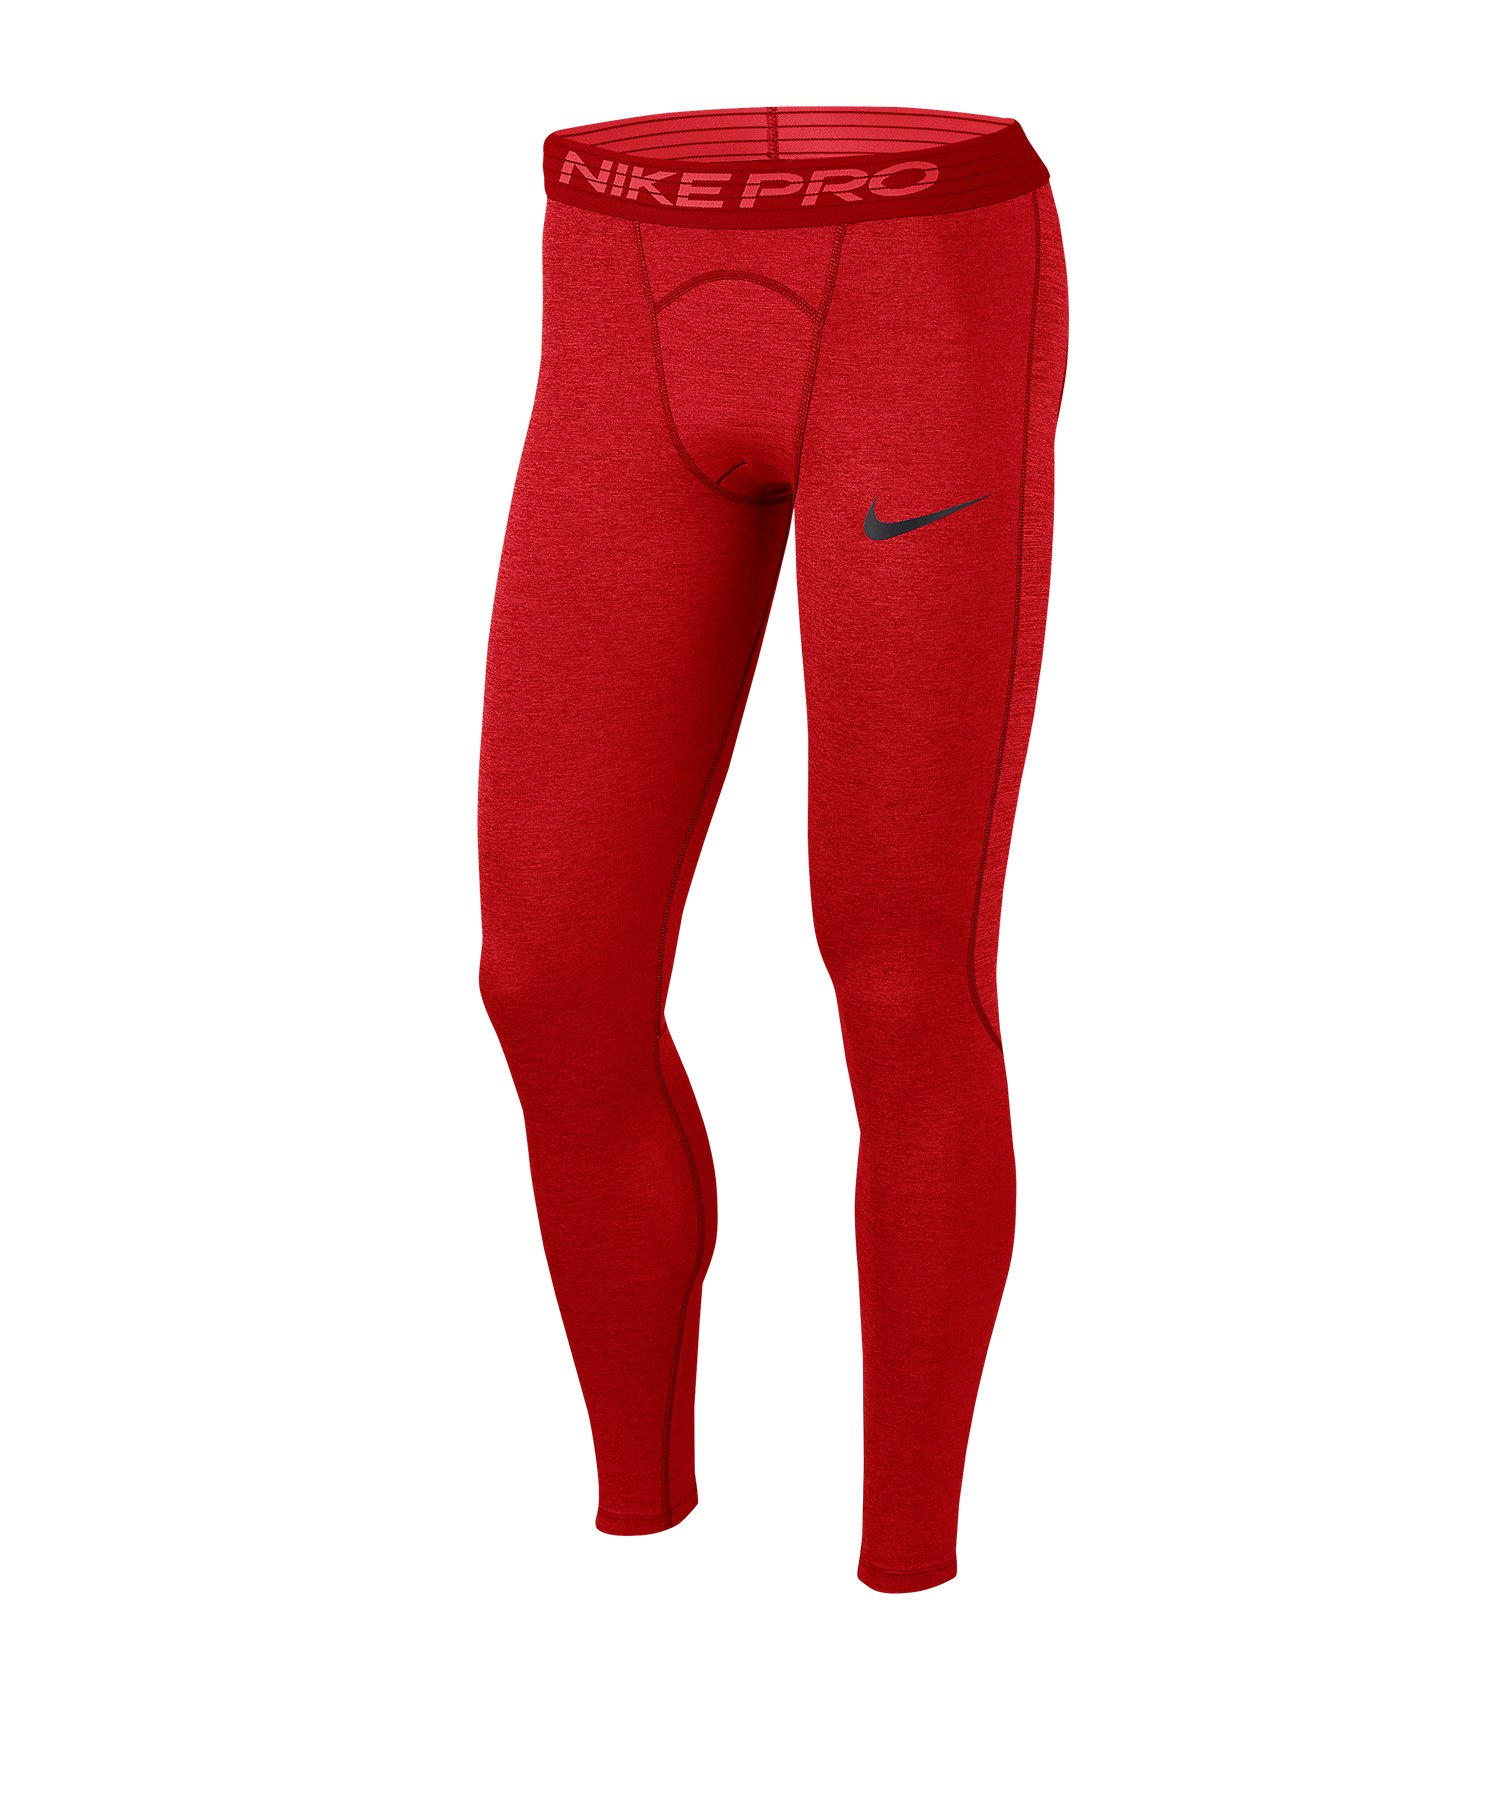 Nike Pro Tight Hose lang Rot F681 - rot